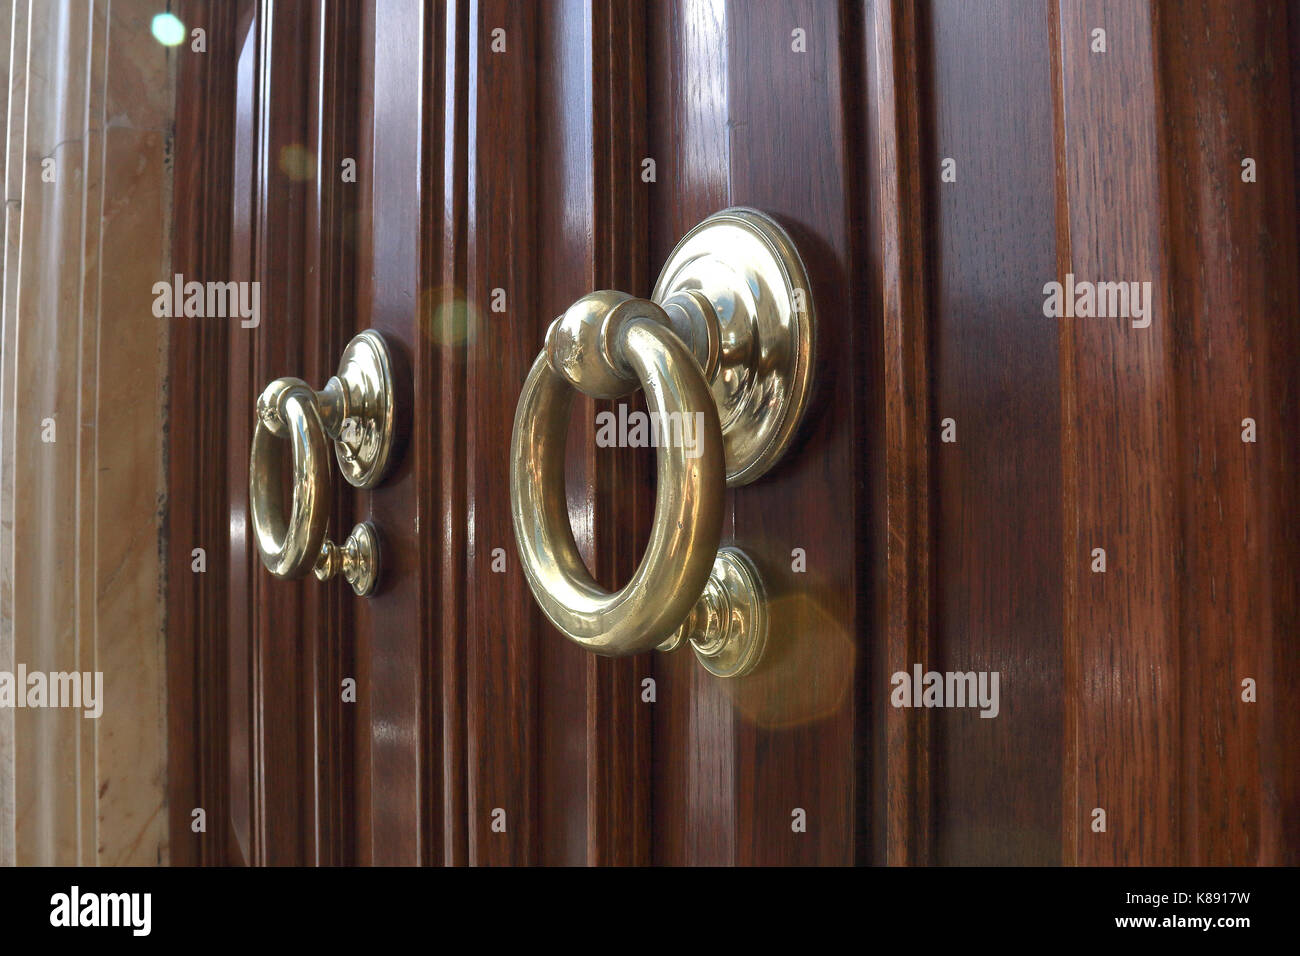 Gold ring door knockers, wooden door in marble frame. Shallow focus. Rome, Italy. - Stock Image